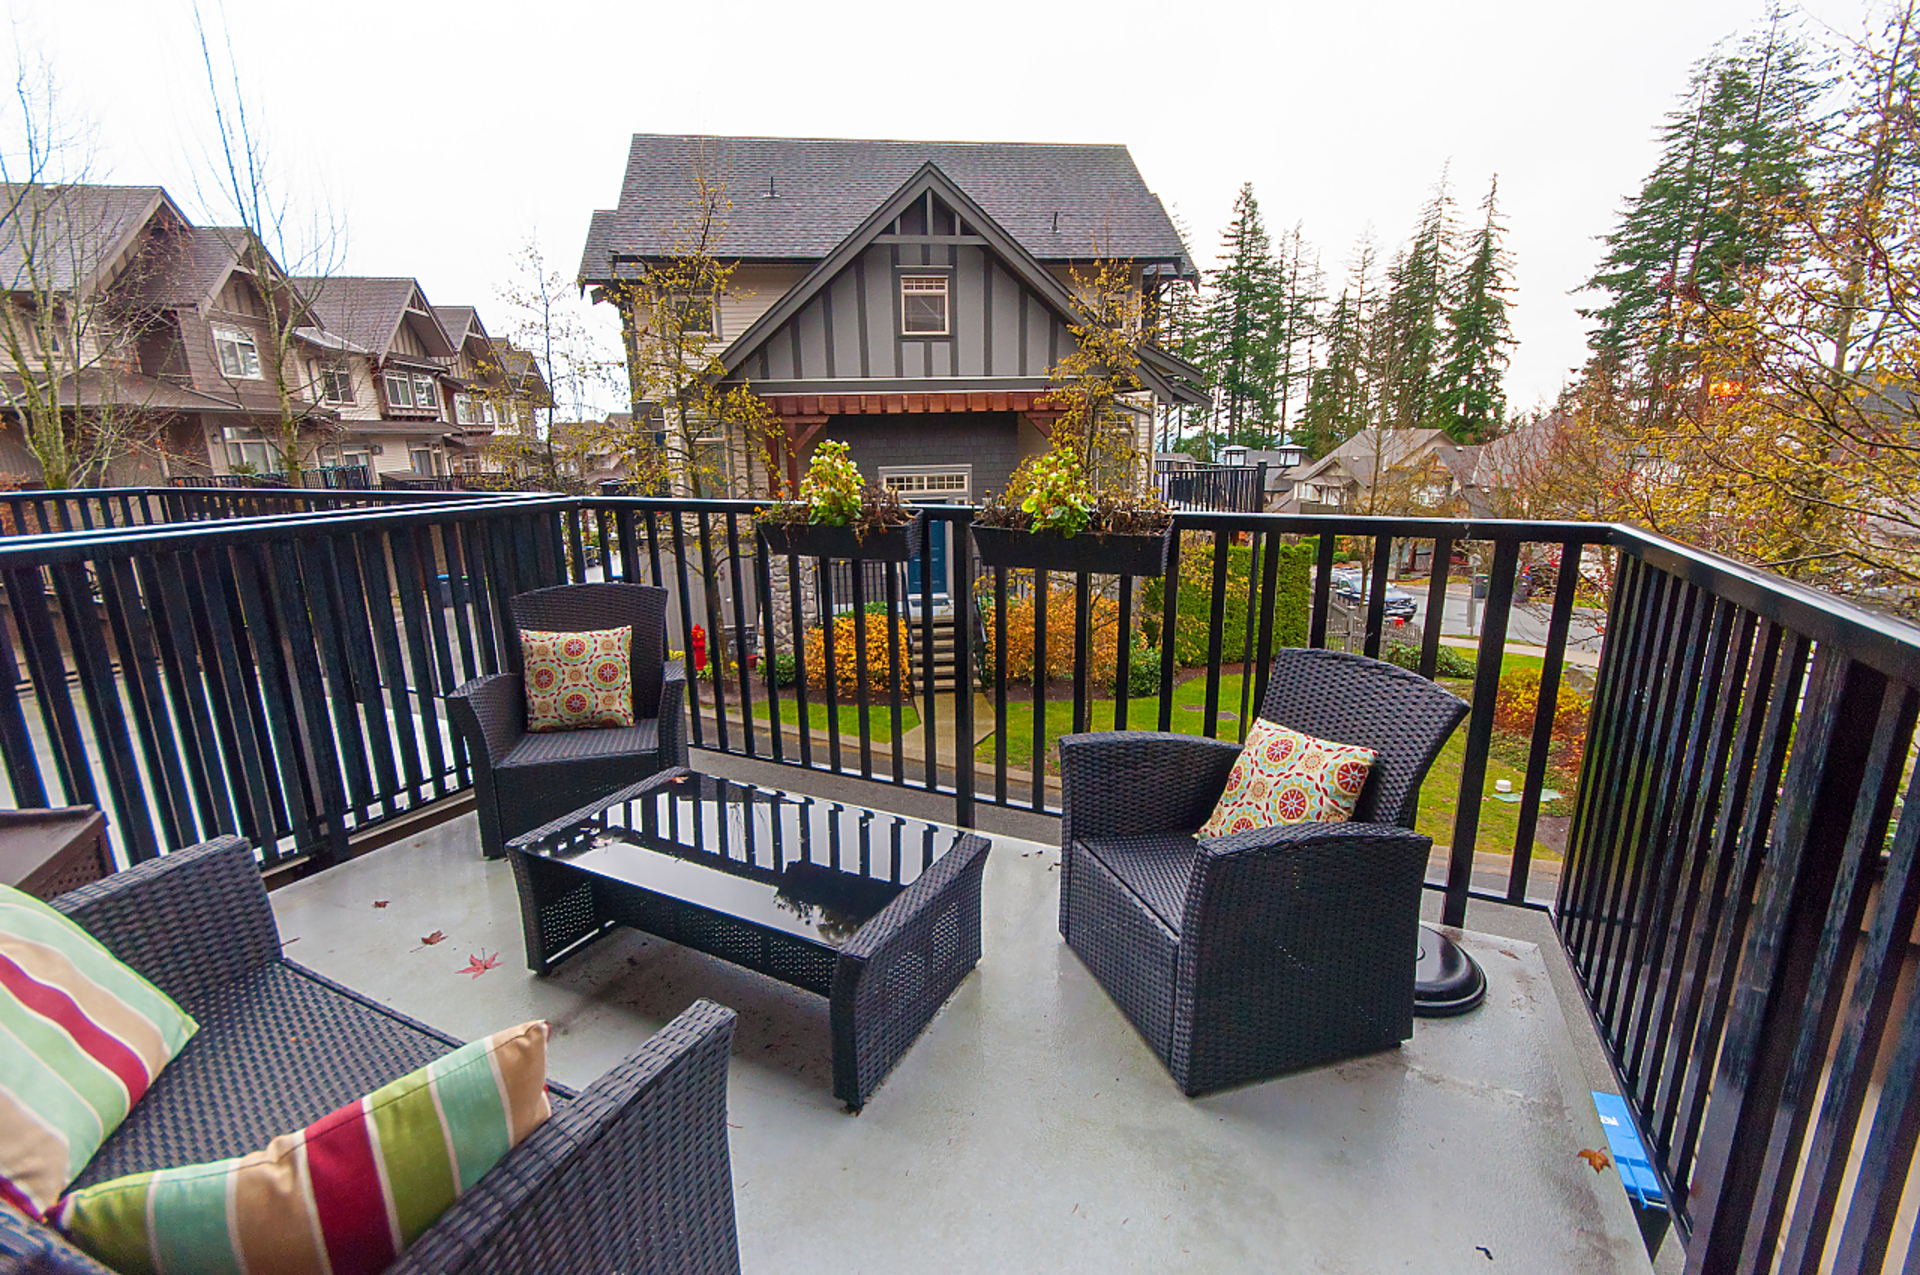 012 at 3 - 55 Hawthorn Drive, Heritage Woods PM, Port Moody